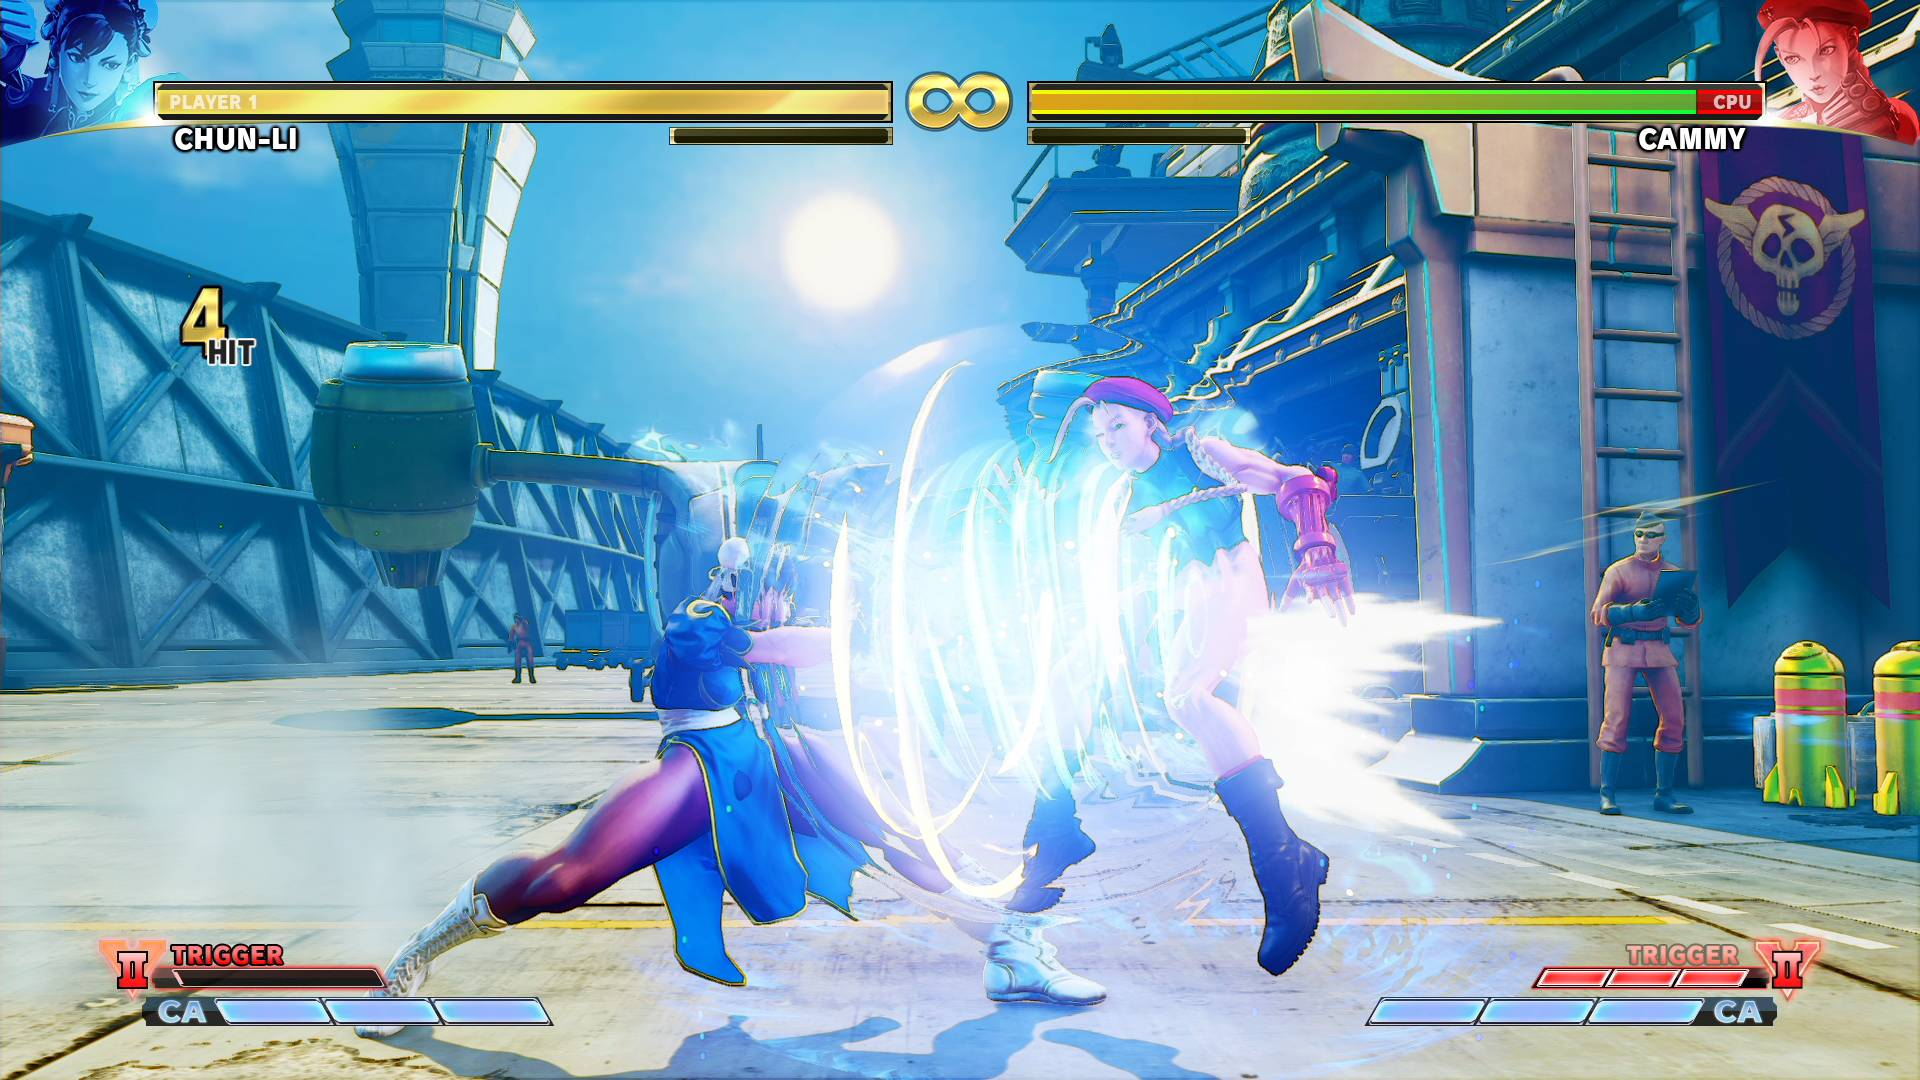 Annunciato Street Fighter V: Arcade Edition per PlayStation 4